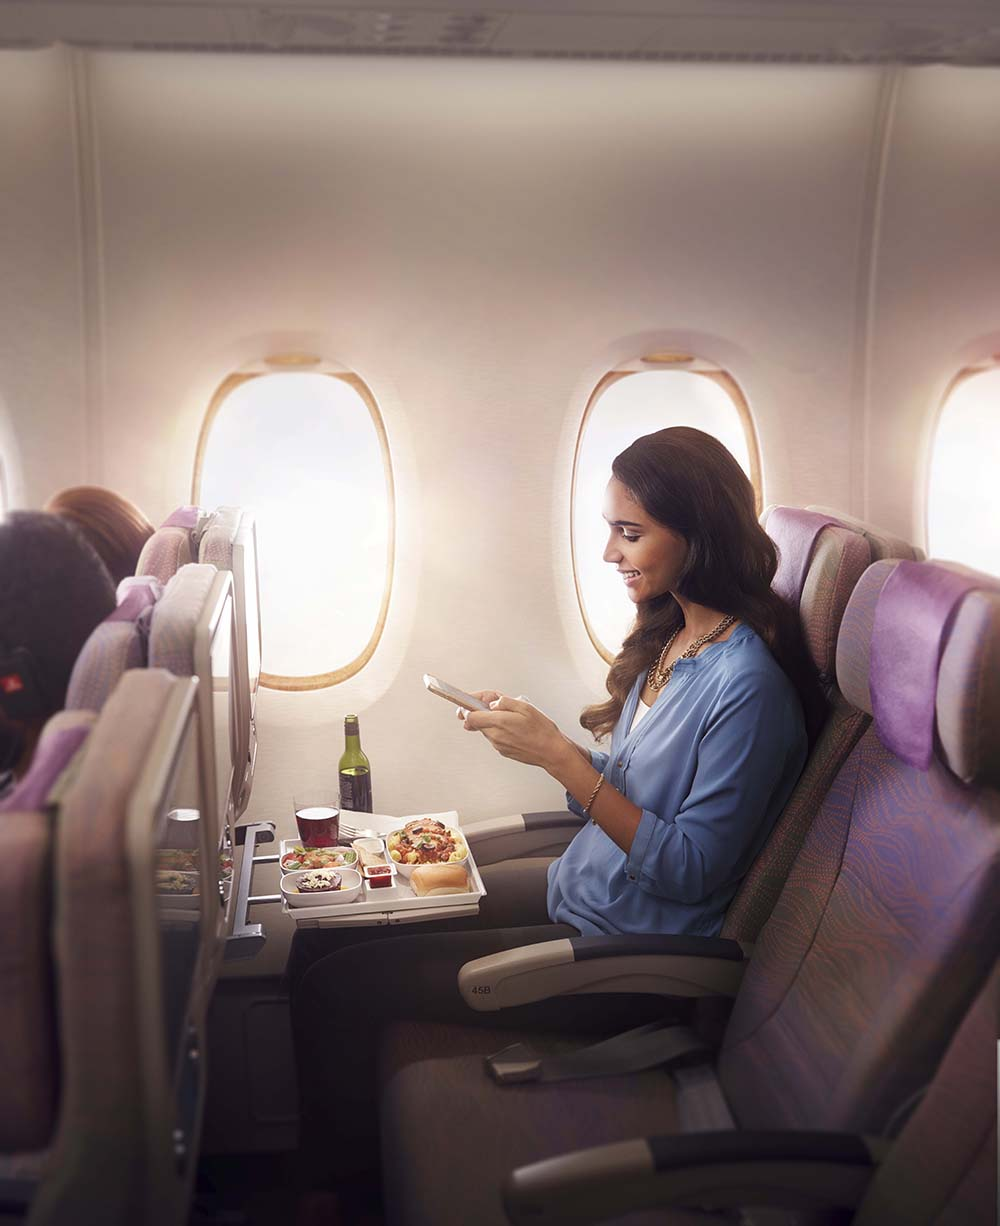 Economy Class Cuisine and Wi-Fi